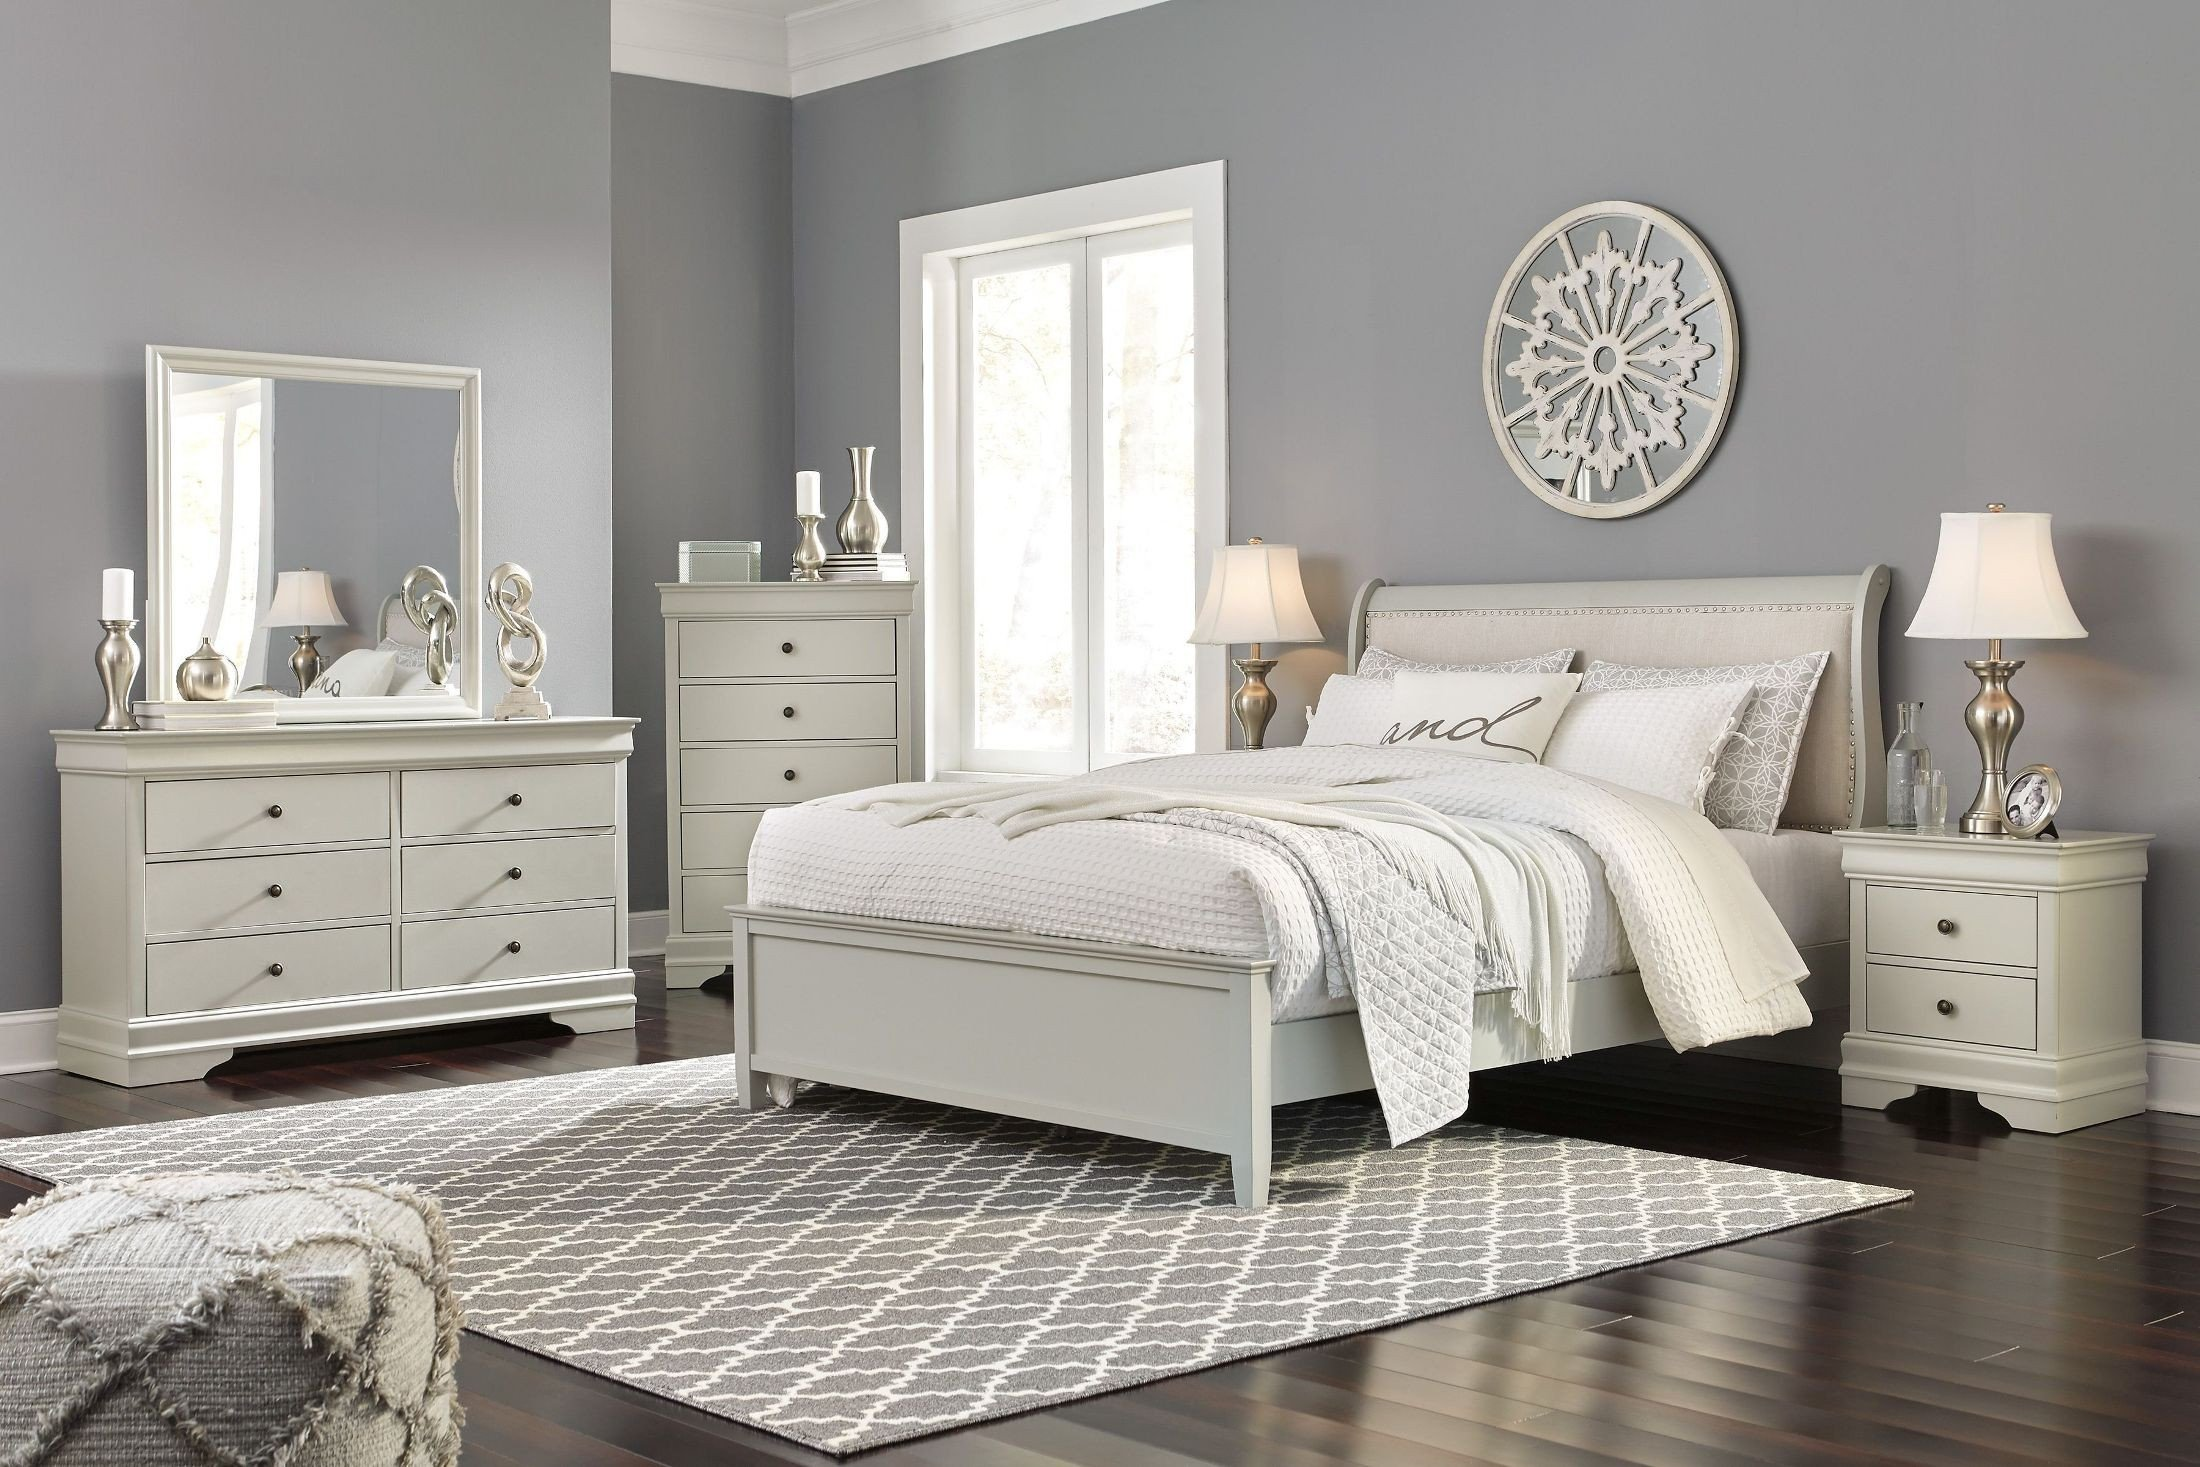 7 Piece Bedroom Set Queen Fresh Emma Mason Signature Jarred 5 Piece Sleigh Bedroom Set In Gray